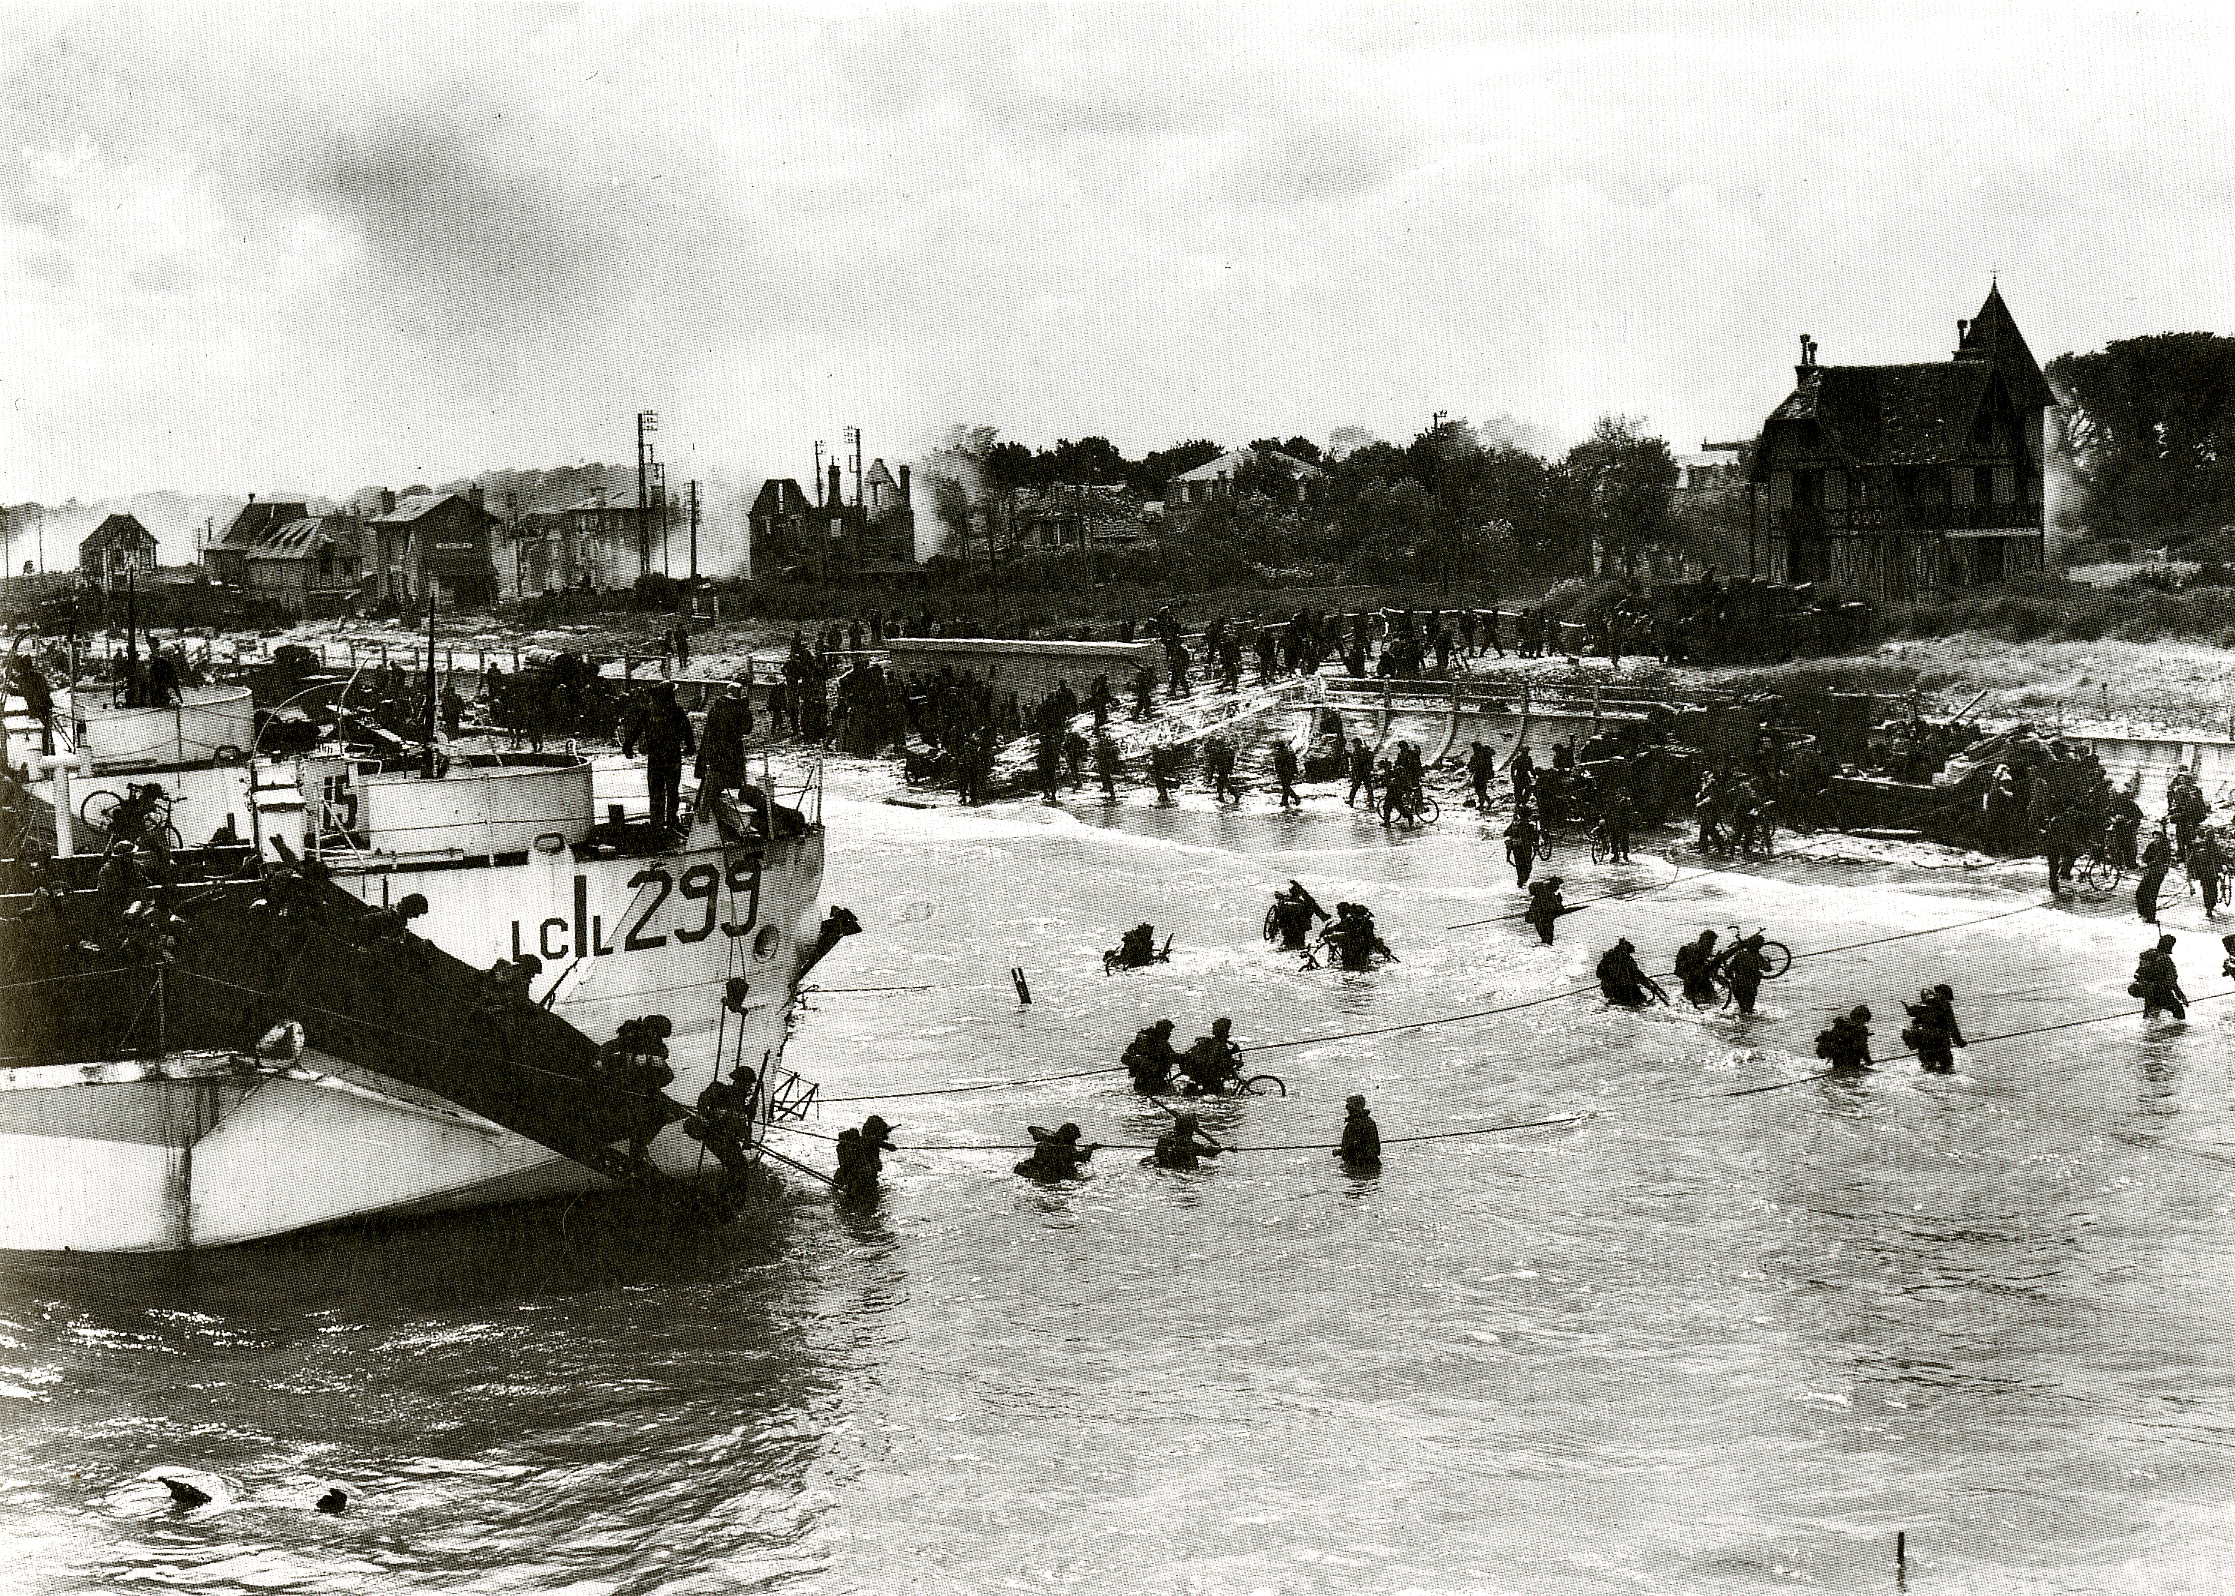 Juno Beach in 1944, approximately 100 soldiers storming the beach